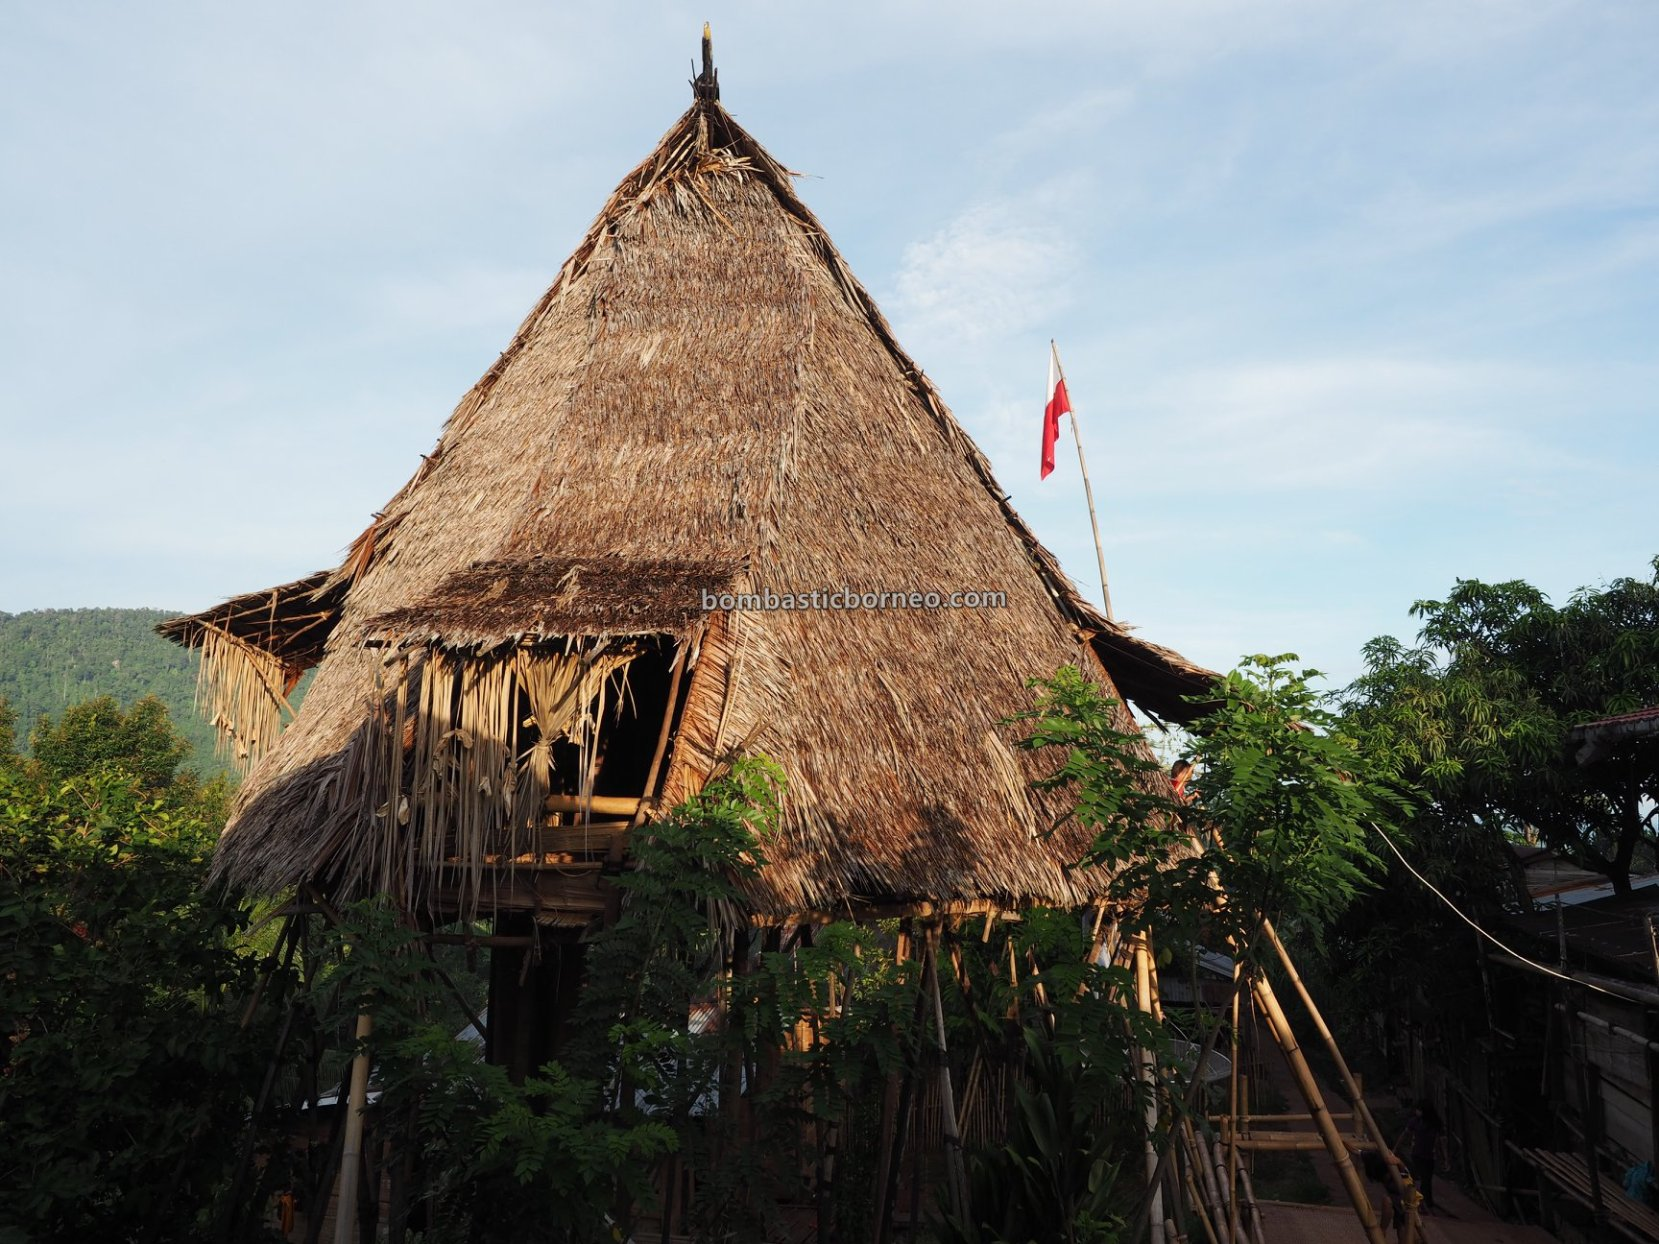 authentic, destination, culture, Indonesia, Bengkayang, native, Dayak Bidayuh, tribal, Tourism, travel guide, cross border, Rumah Adat Baluk, 婆罗洲原住民骷髅屋, 印尼西加里曼丹, 孟加映达雅部落,